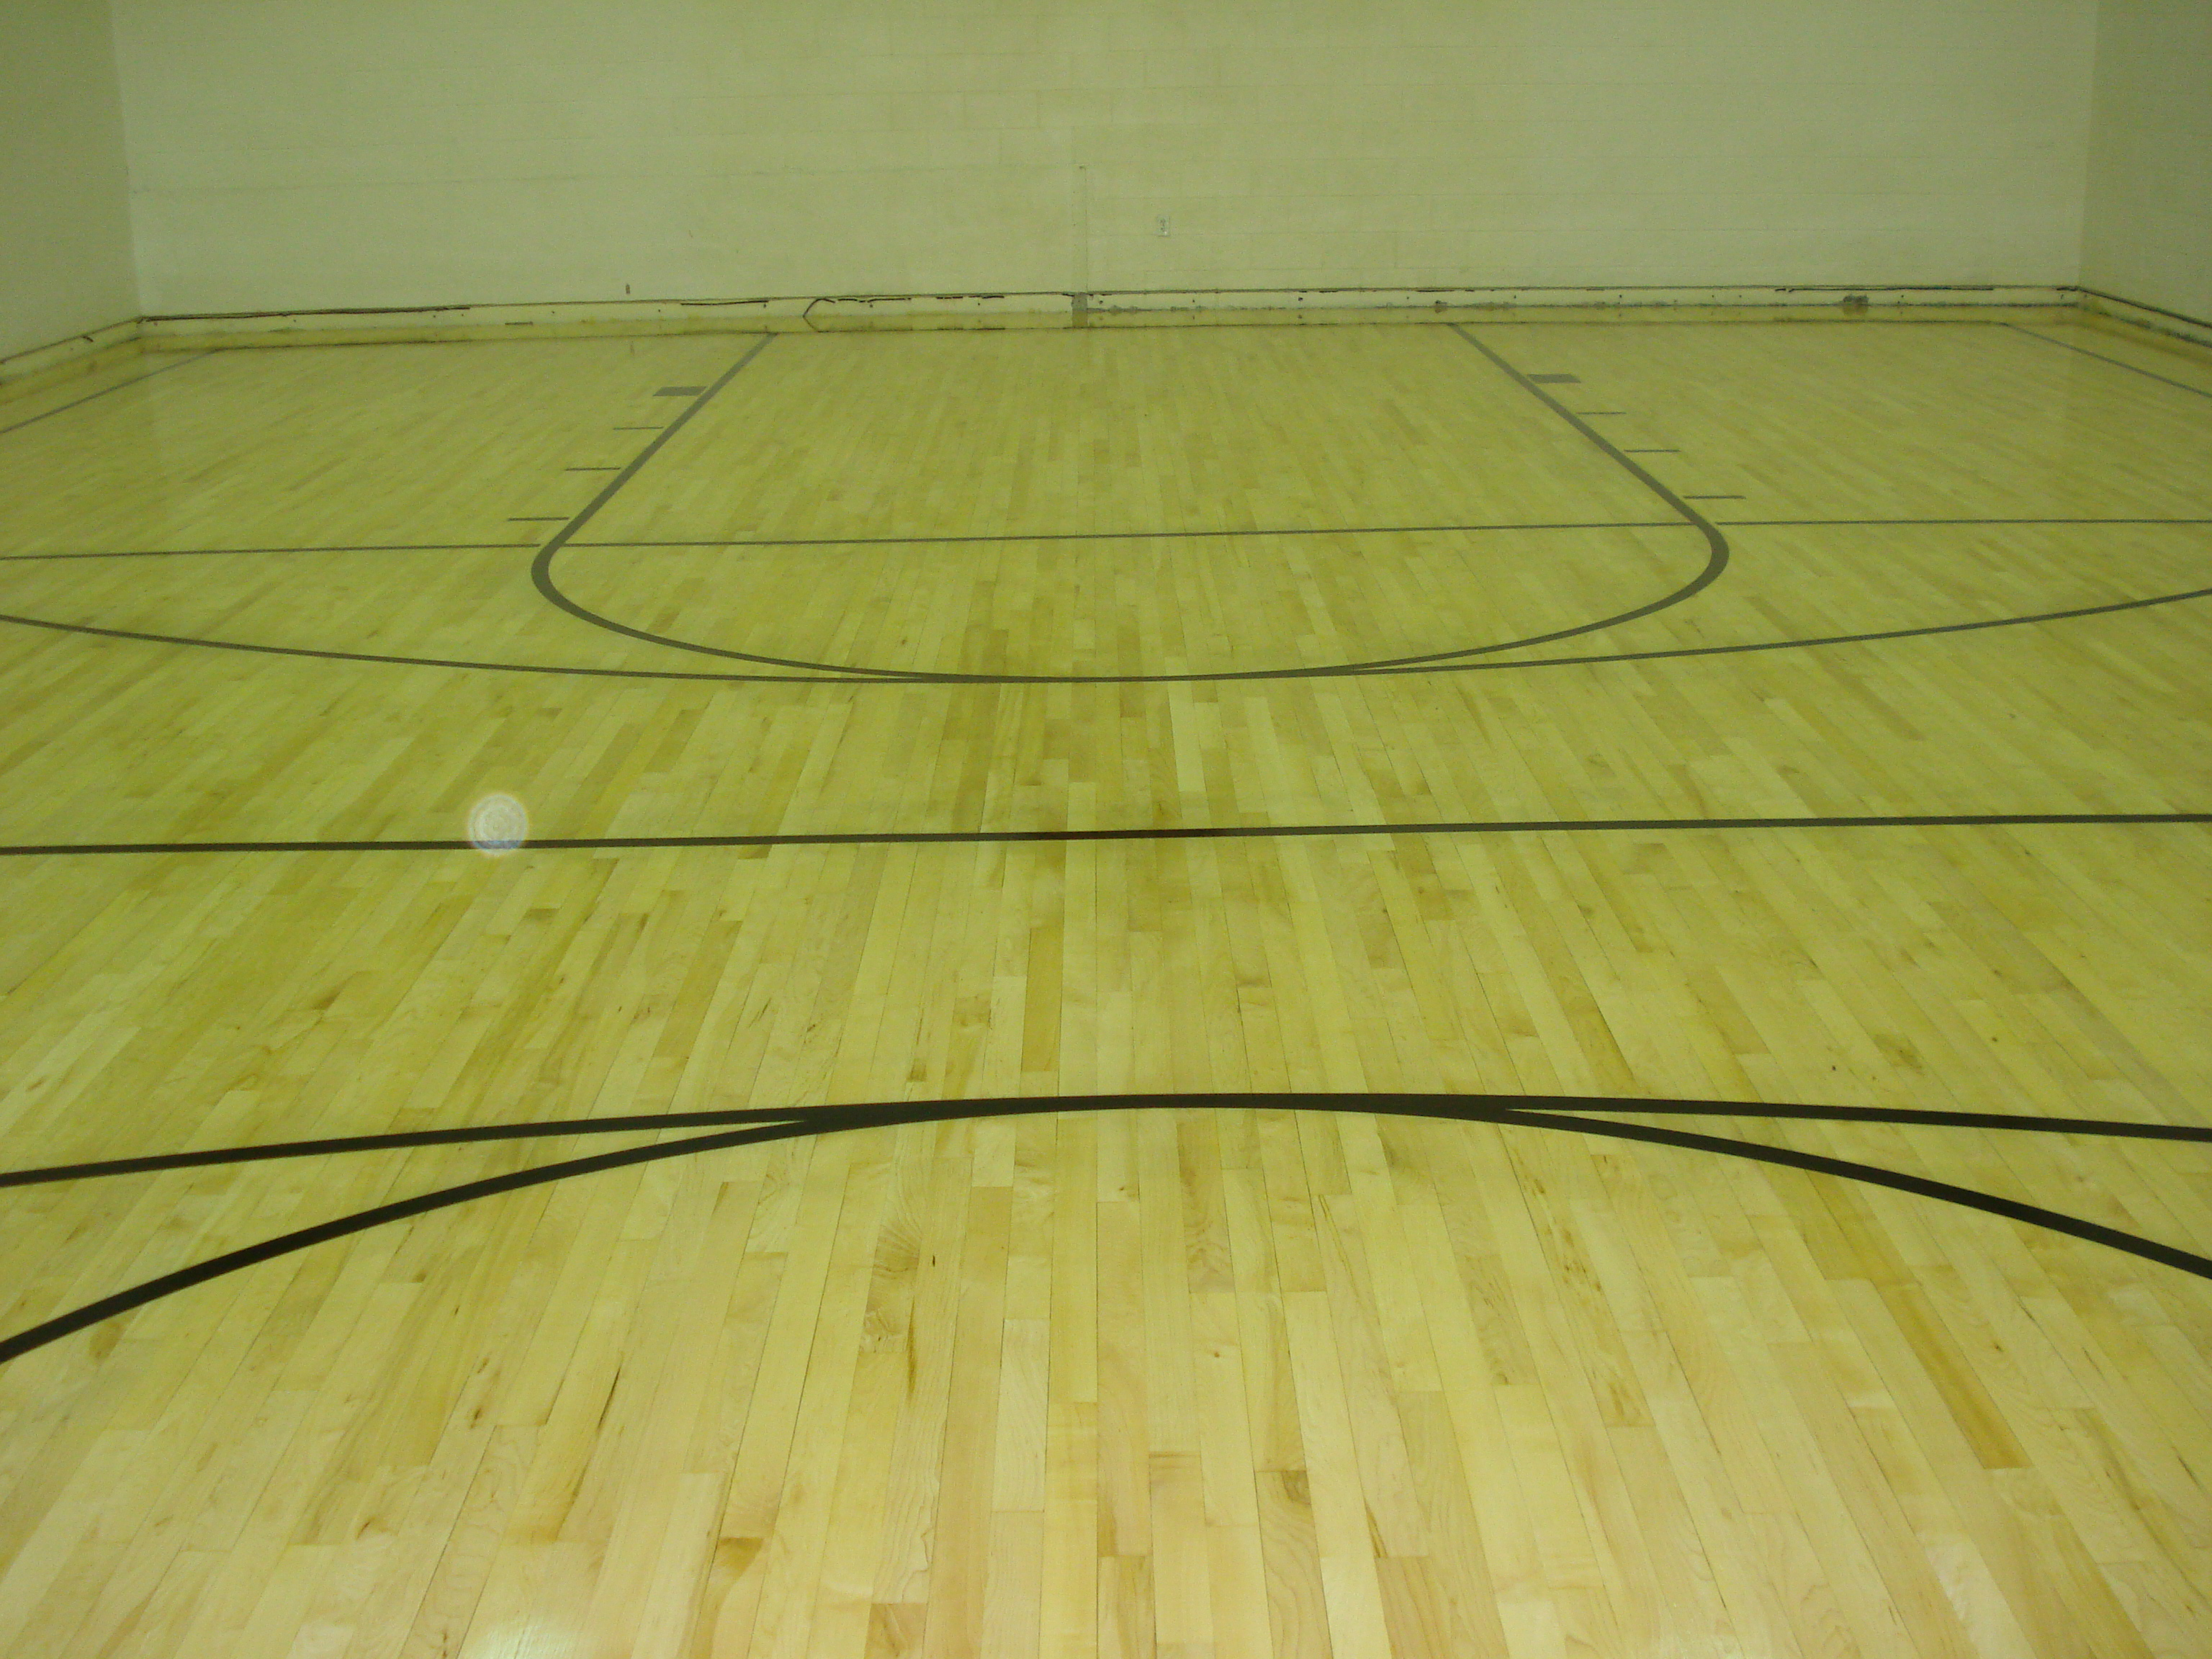 Basketball court wood flooring cost Basketball court installation cost